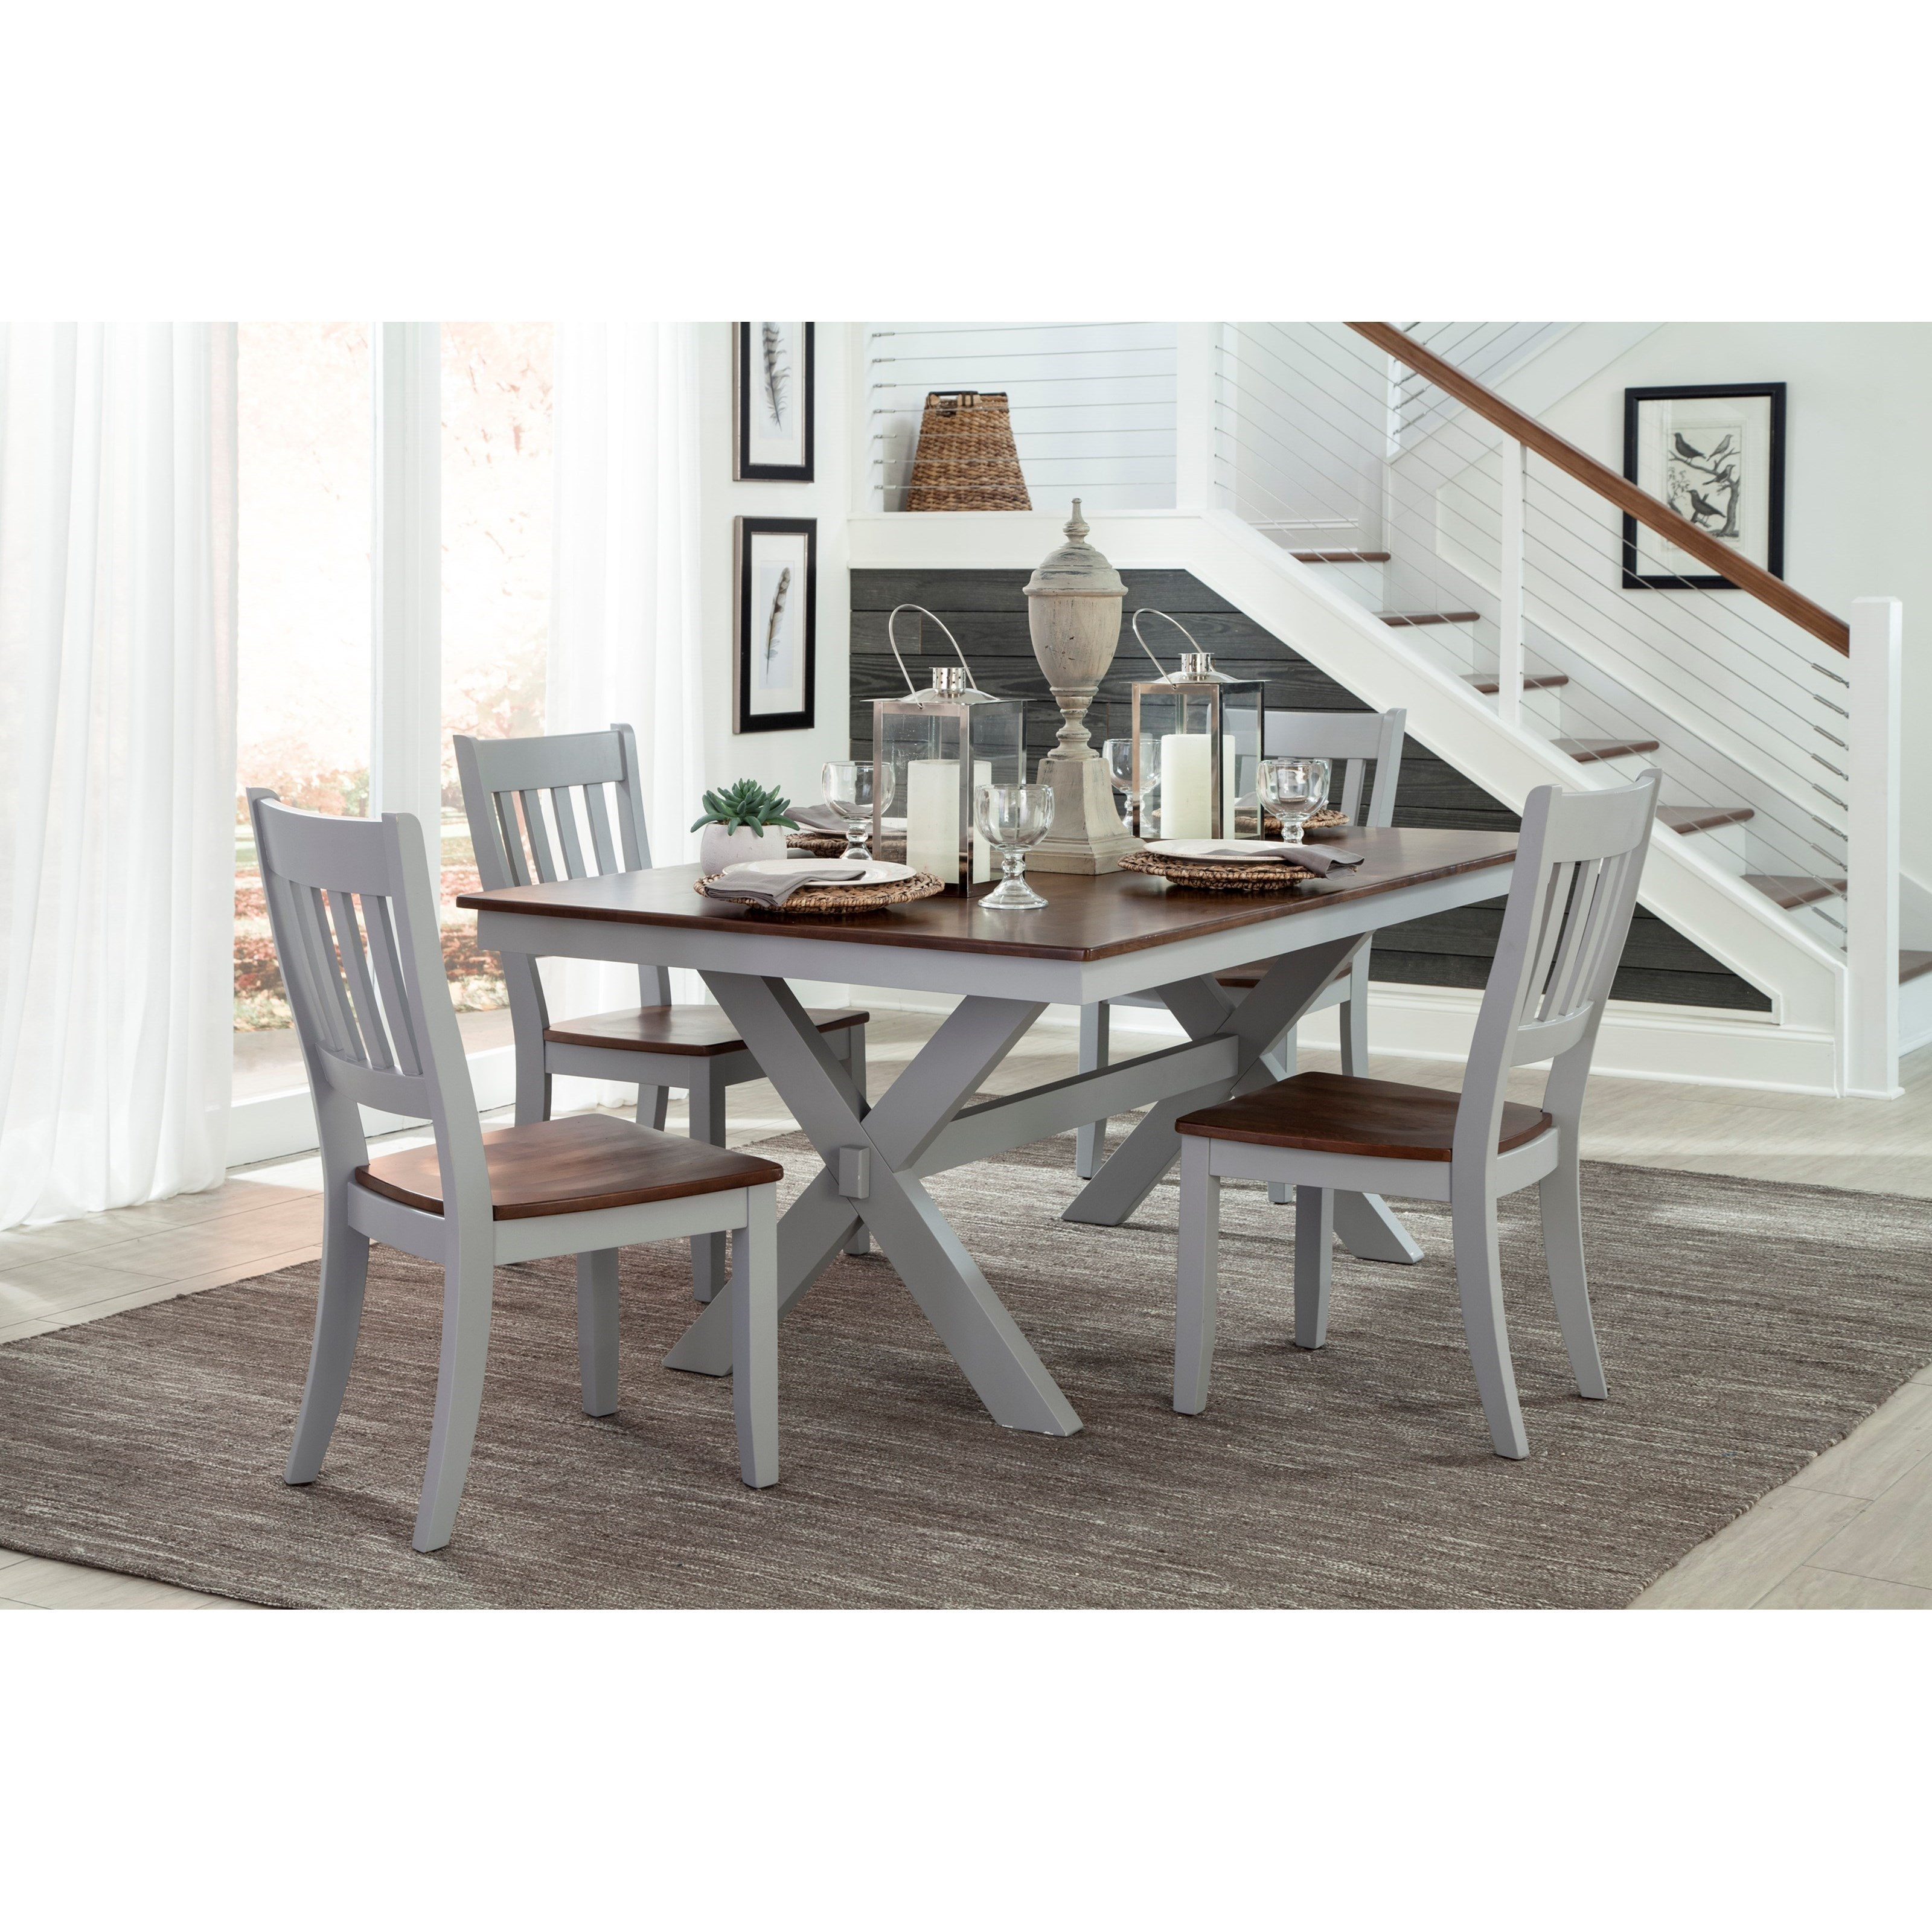 Intercon Small Space5 Piece Dining Set ...